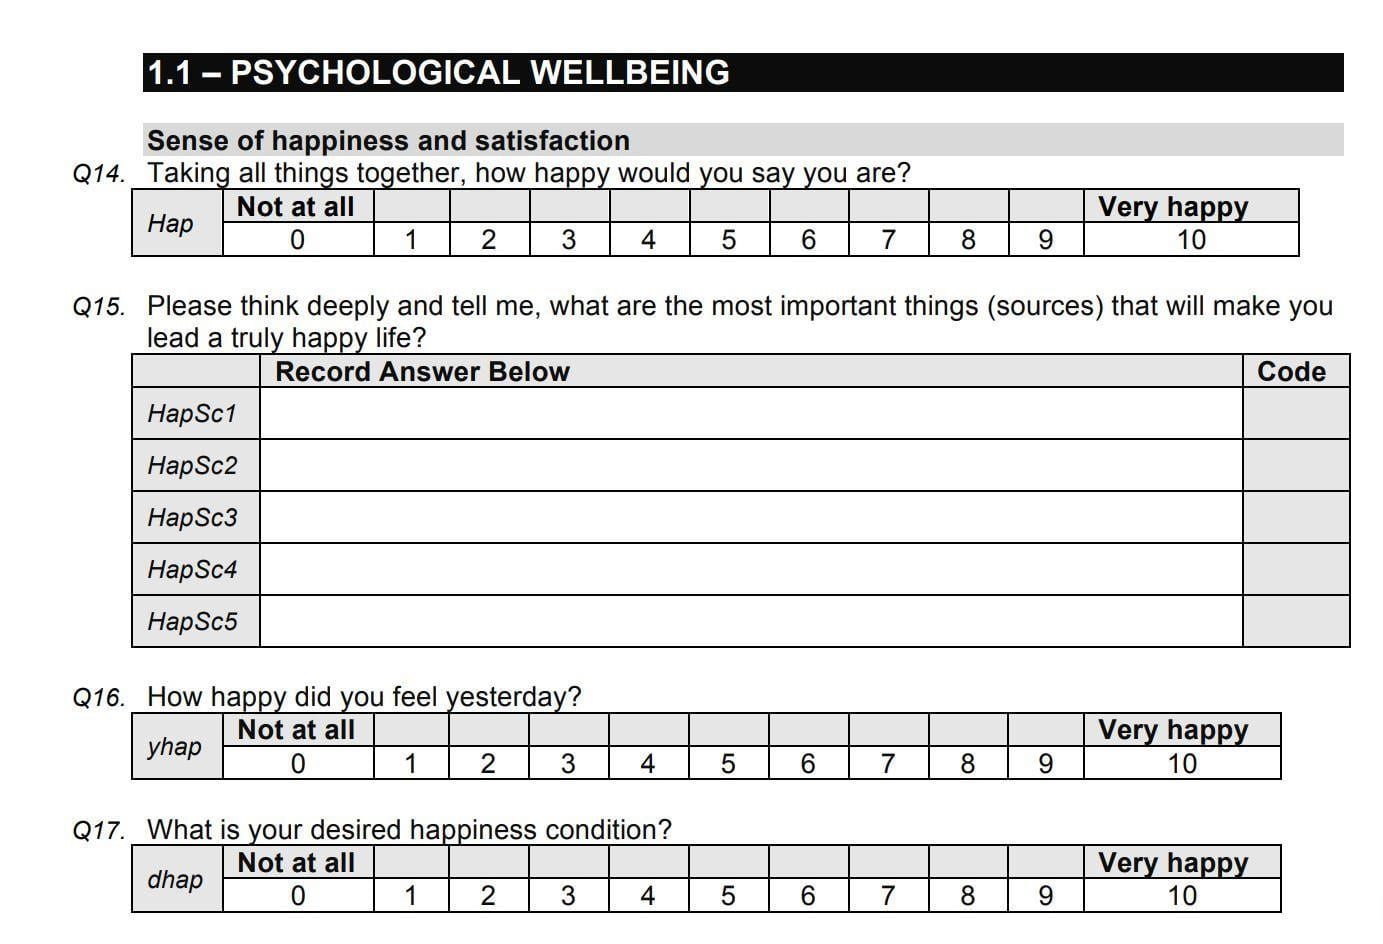 Image of psychological welbeing survey used by Bhutanese goverment to help gauge Gross National Happiness